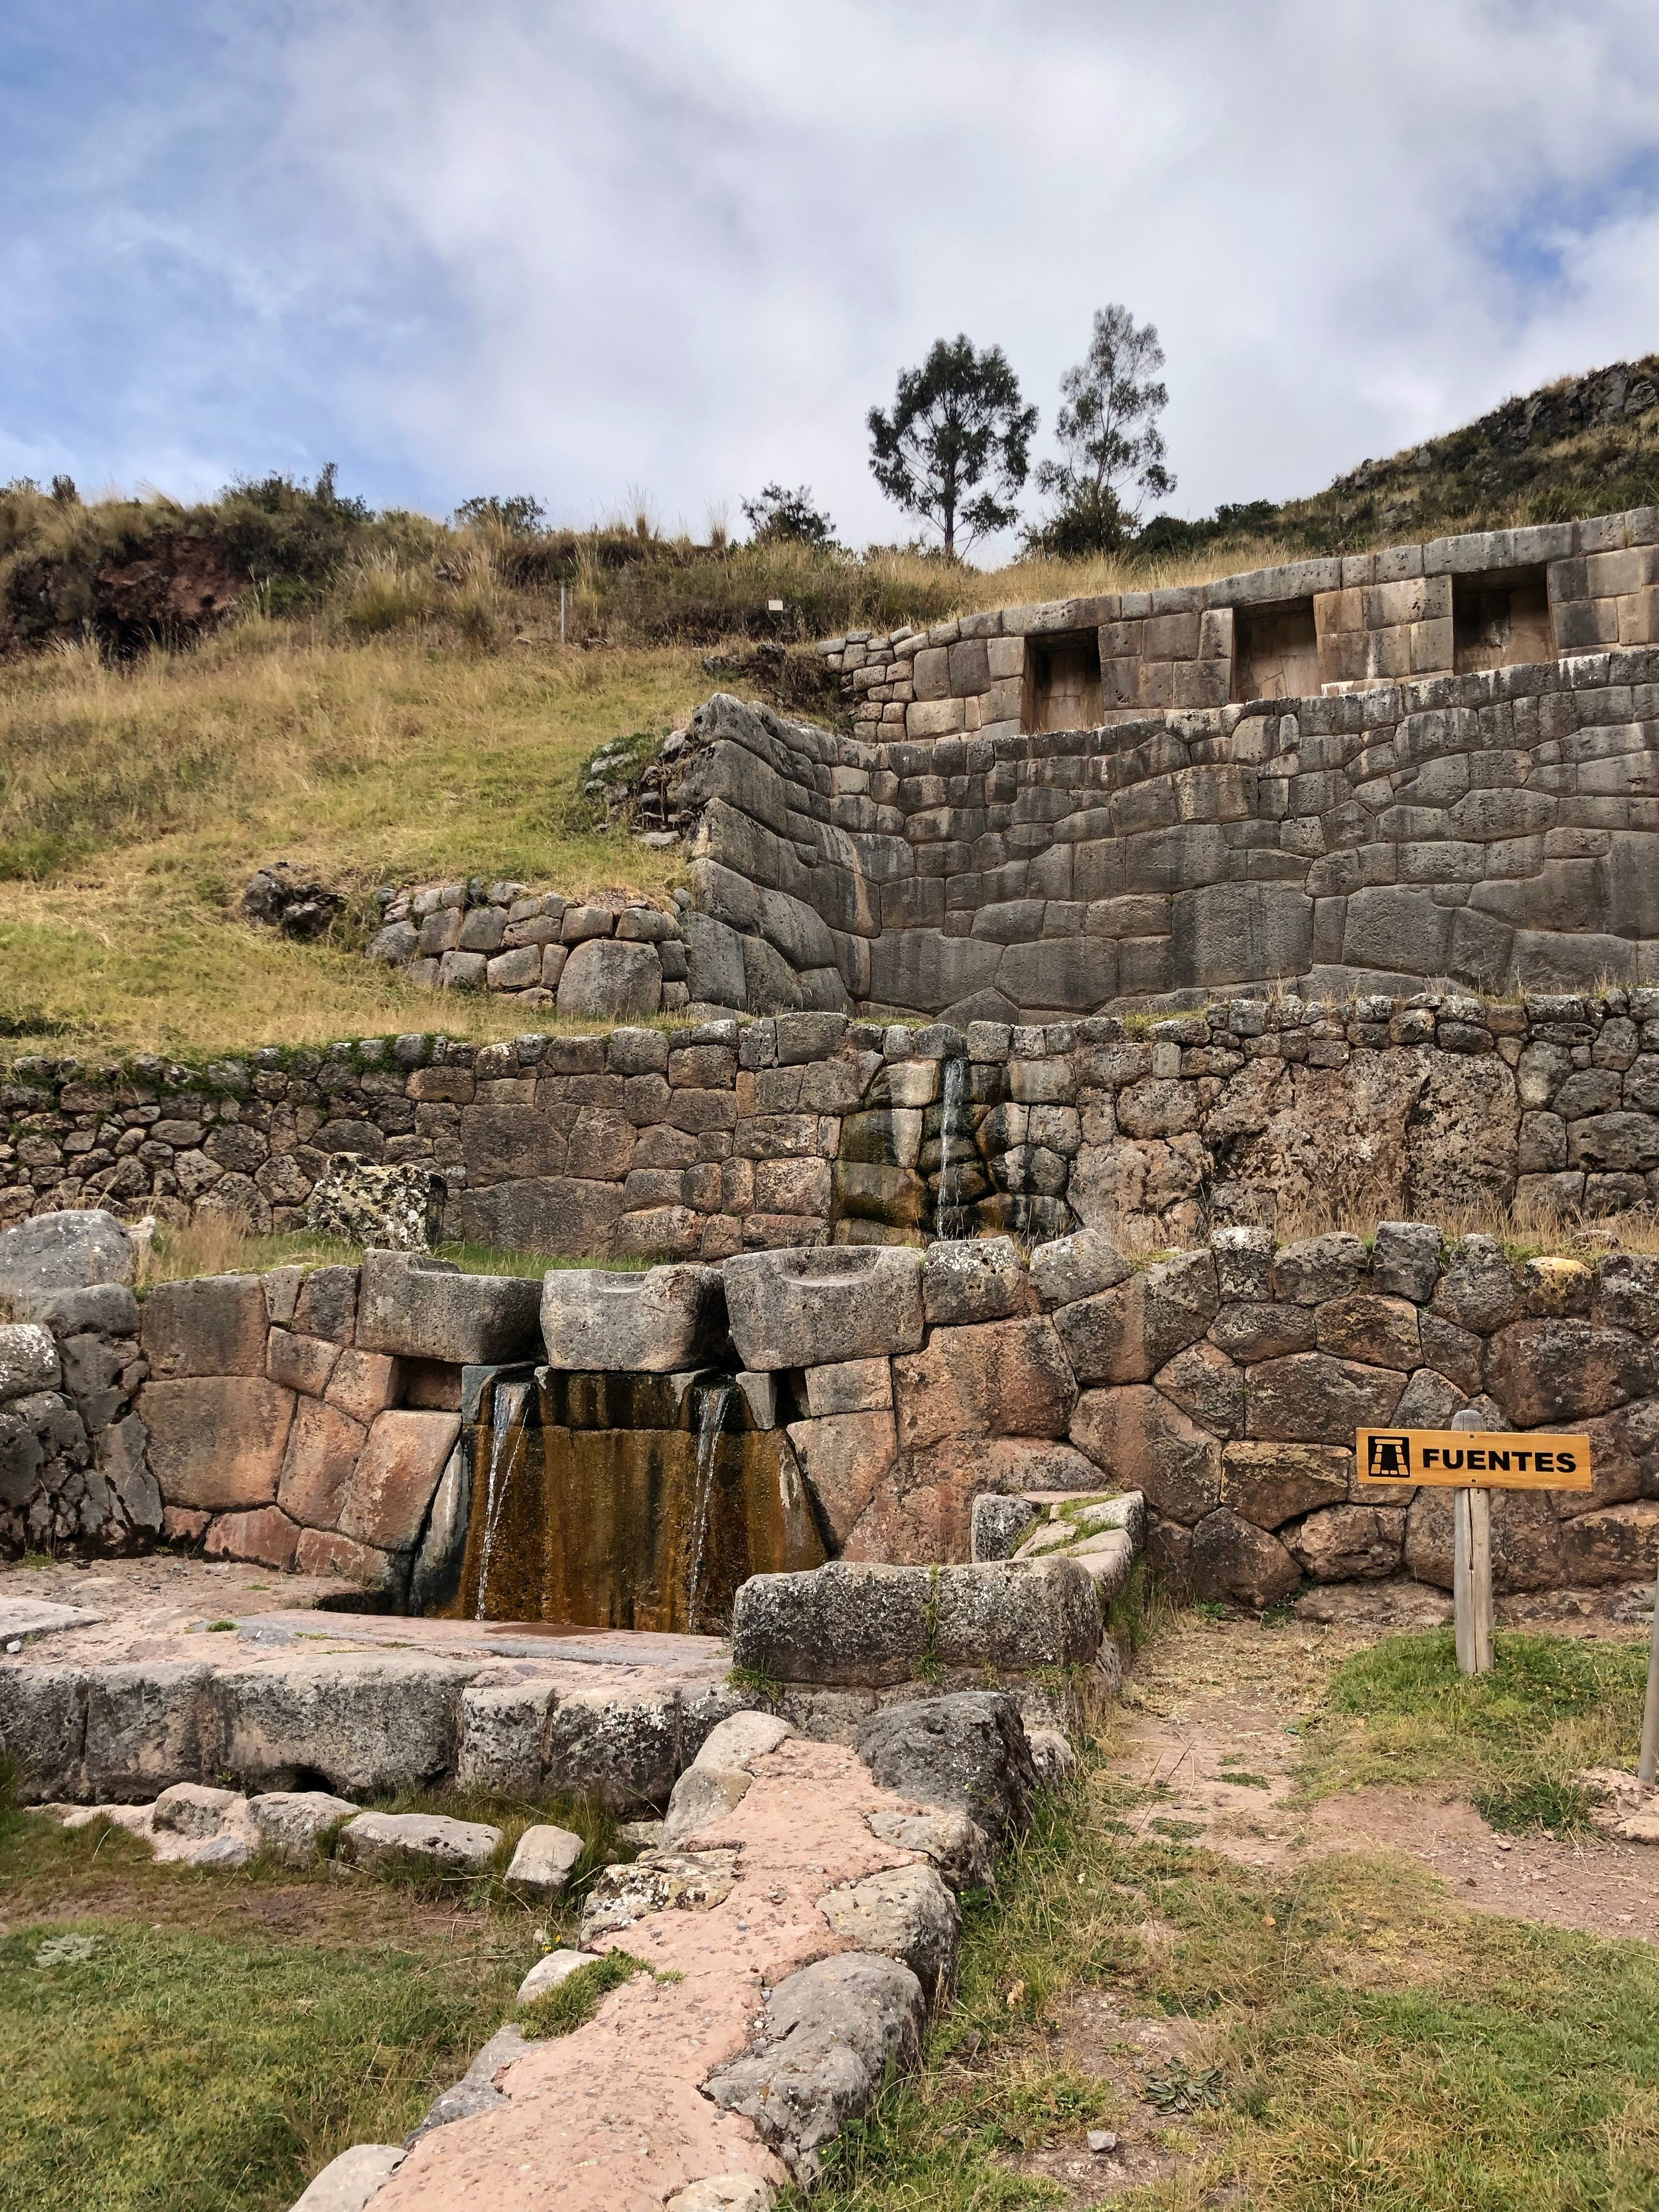 Water still flowing through the ancient aqueducts of Tambomachay